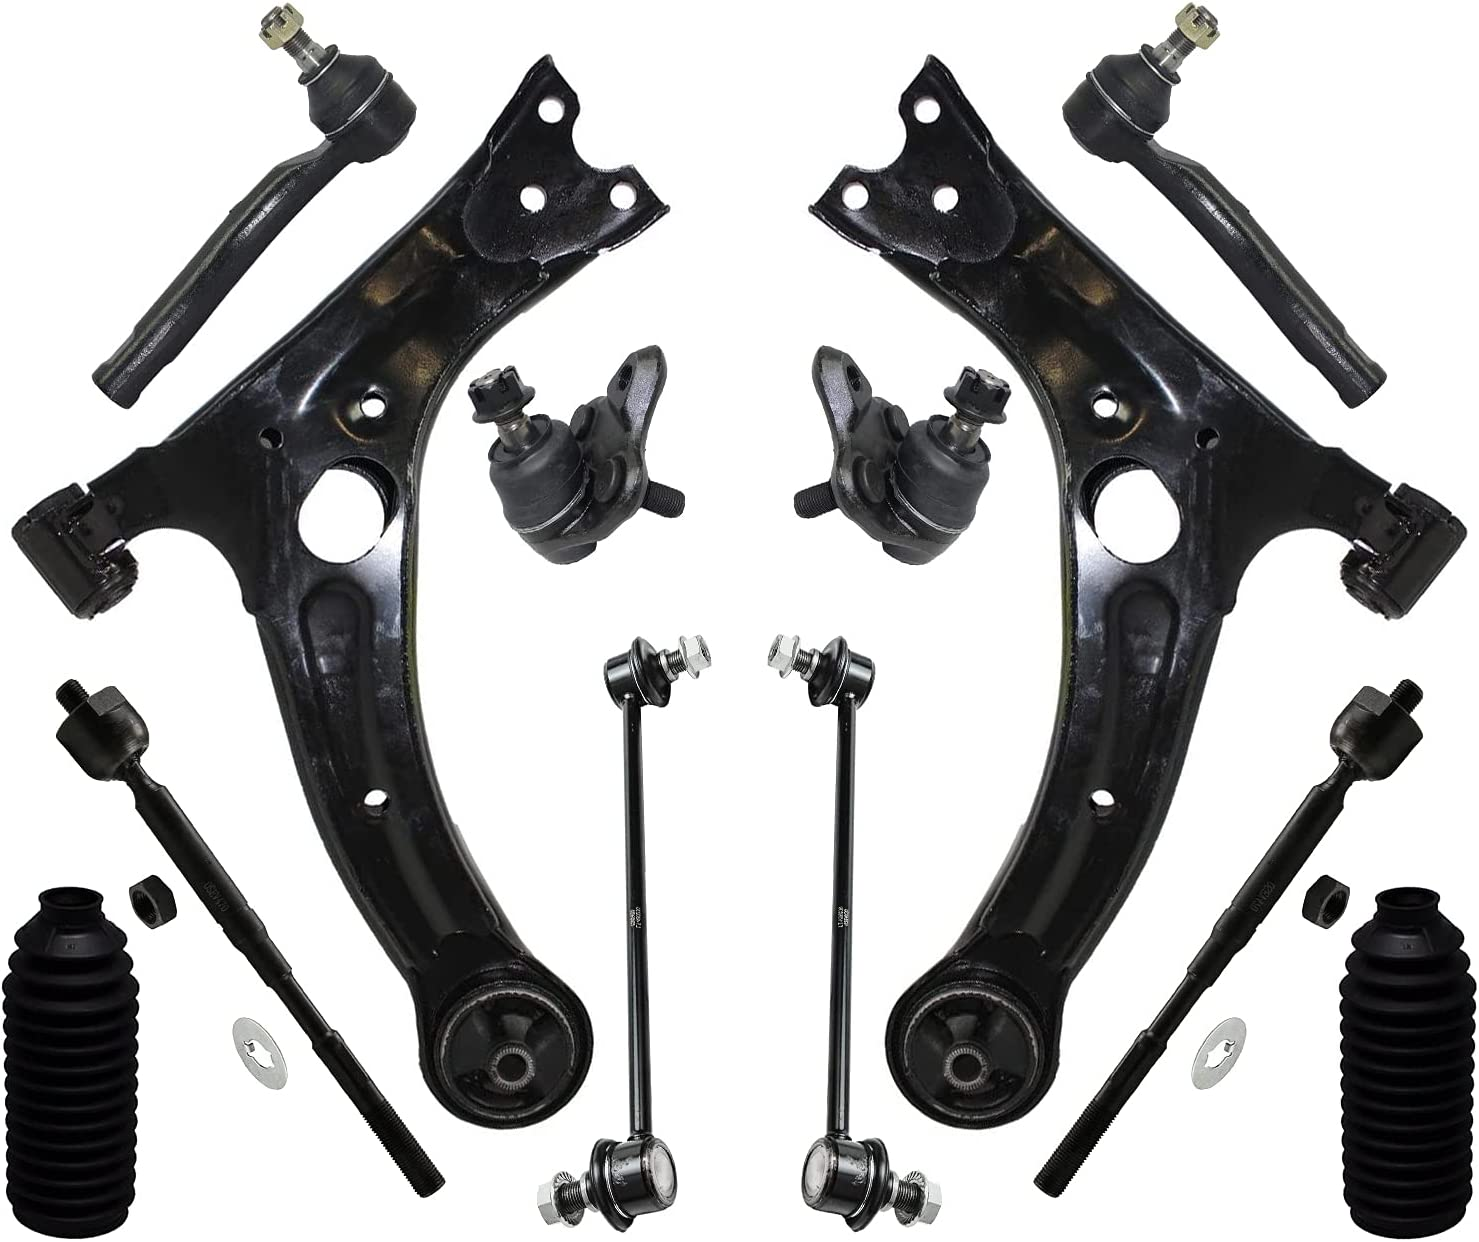 Detroit Axle - Front Lower Control Sway Over item handling ☆ Arms Bar Joints Ball + Fees free